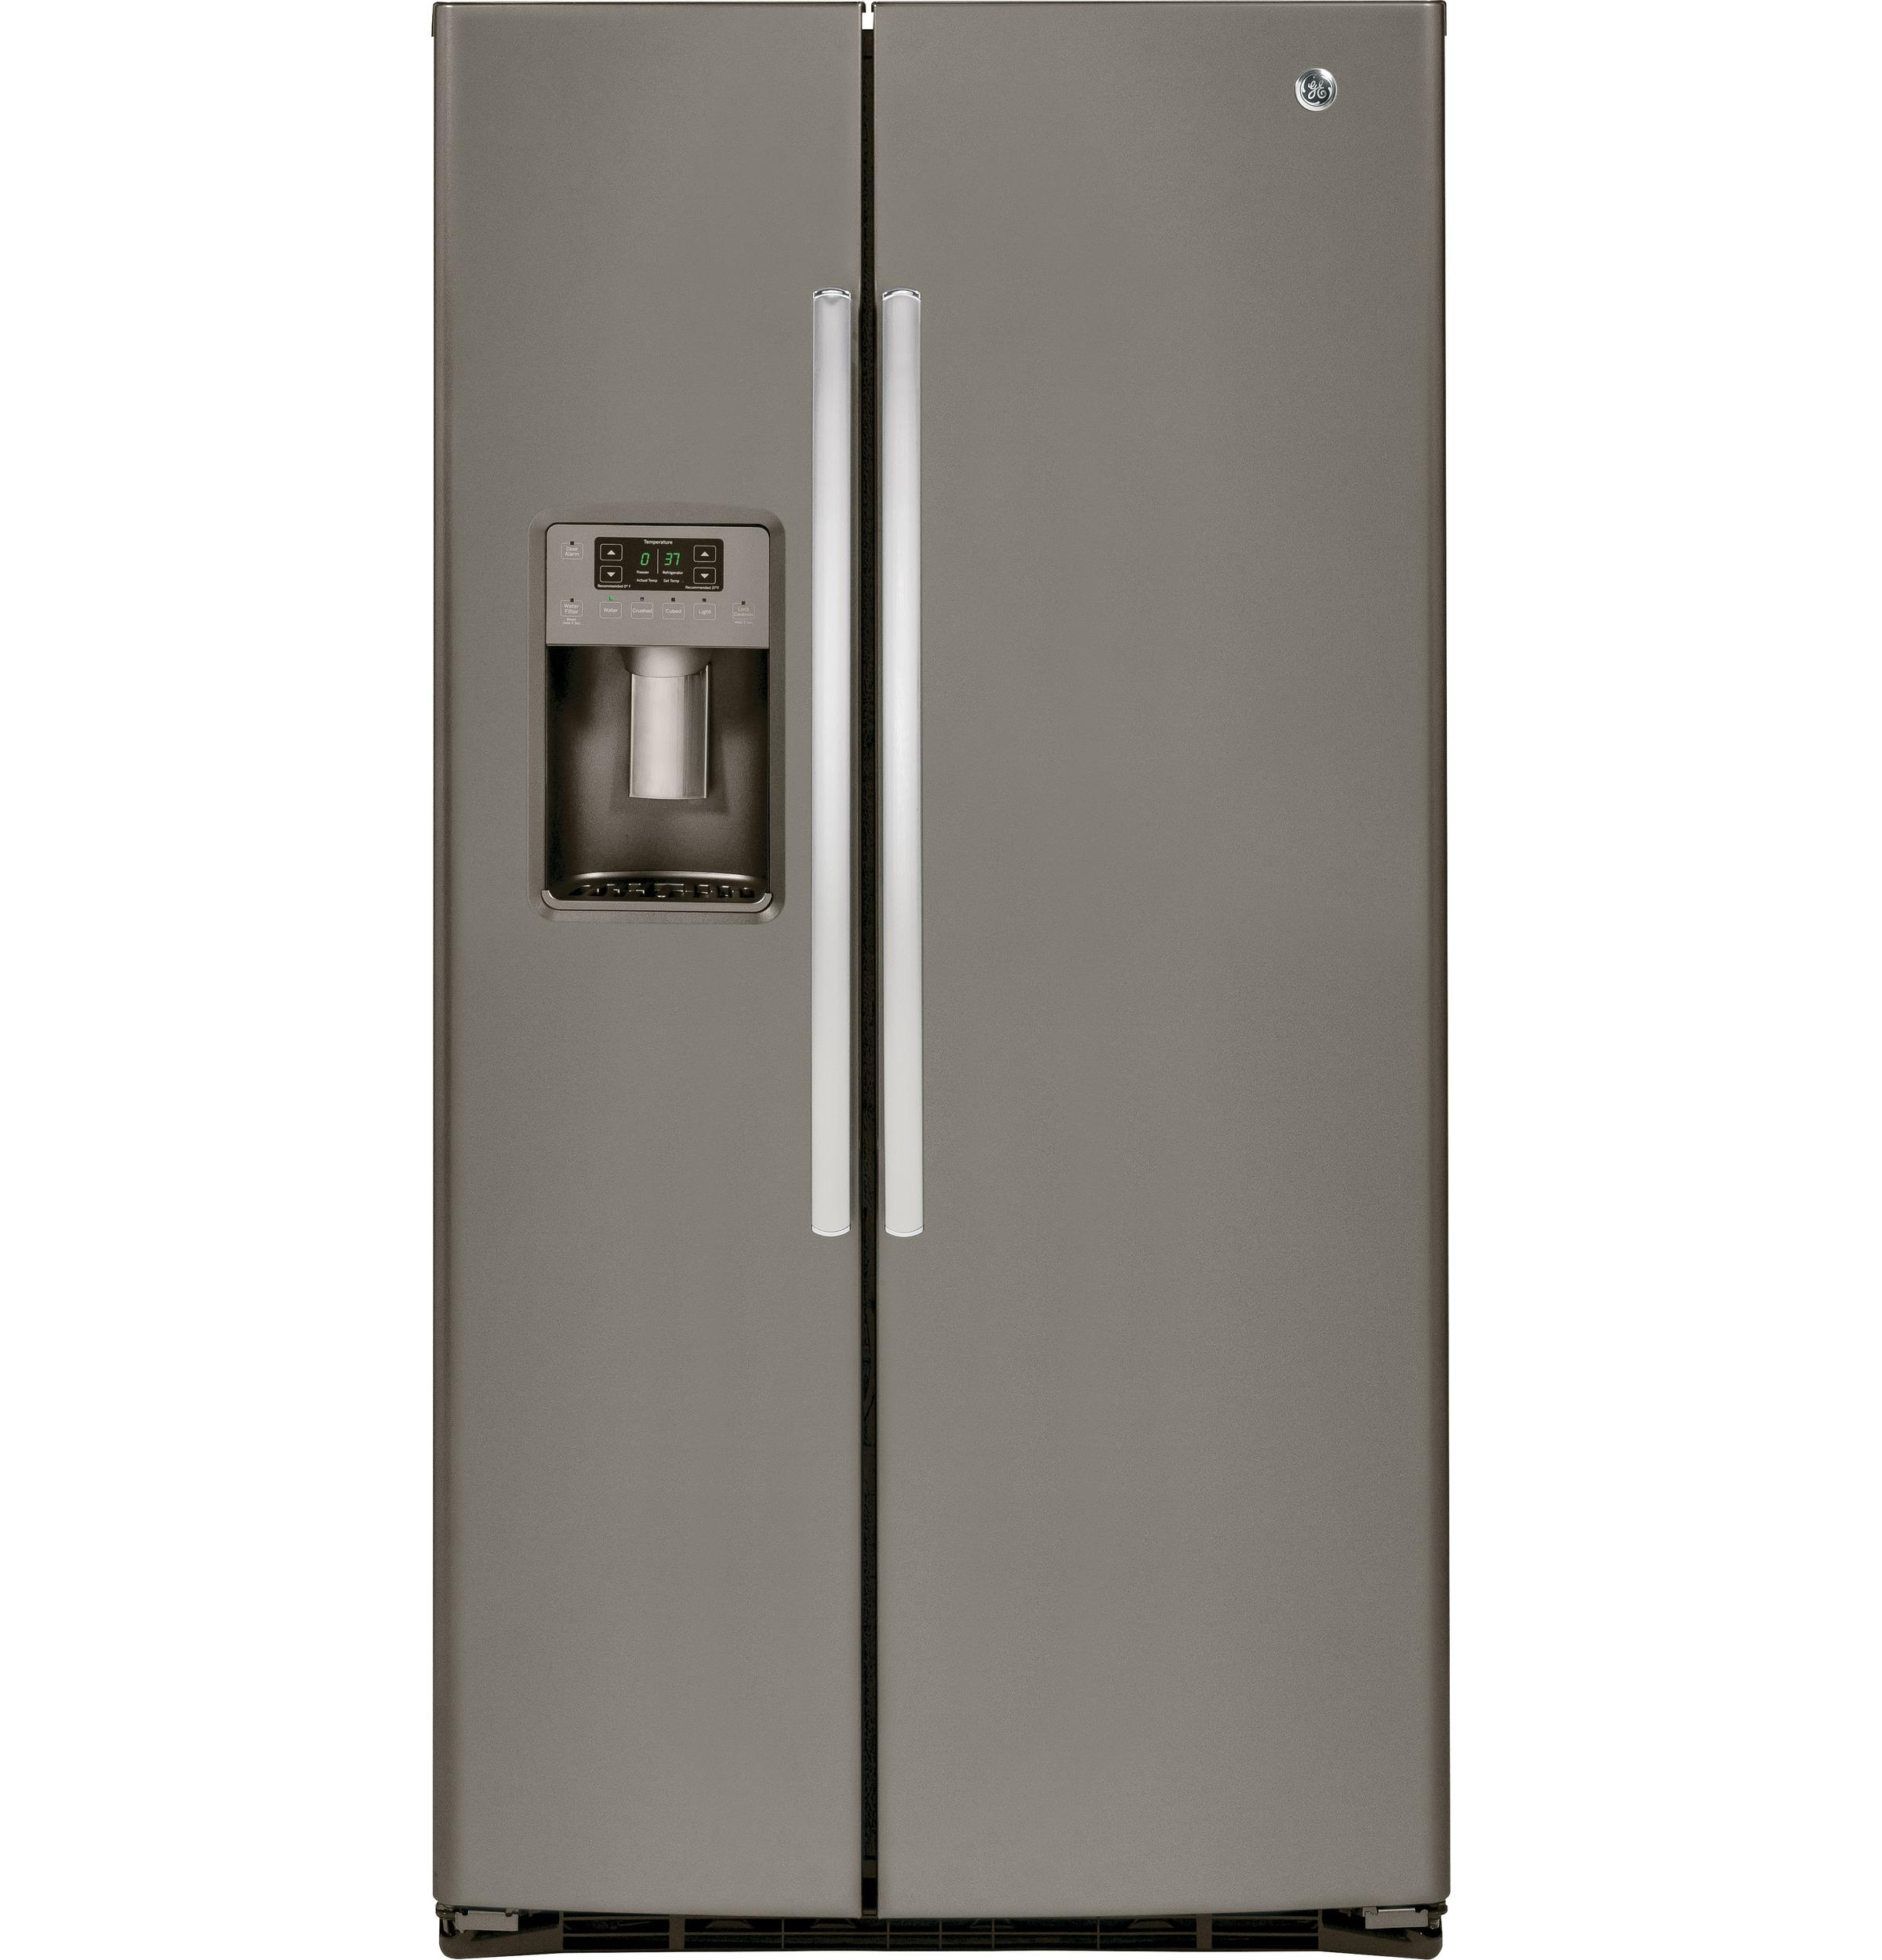 GE(R) ENERGY STAR(R) 25.3 Cu. Ft. Side-By-Side Refrigerator